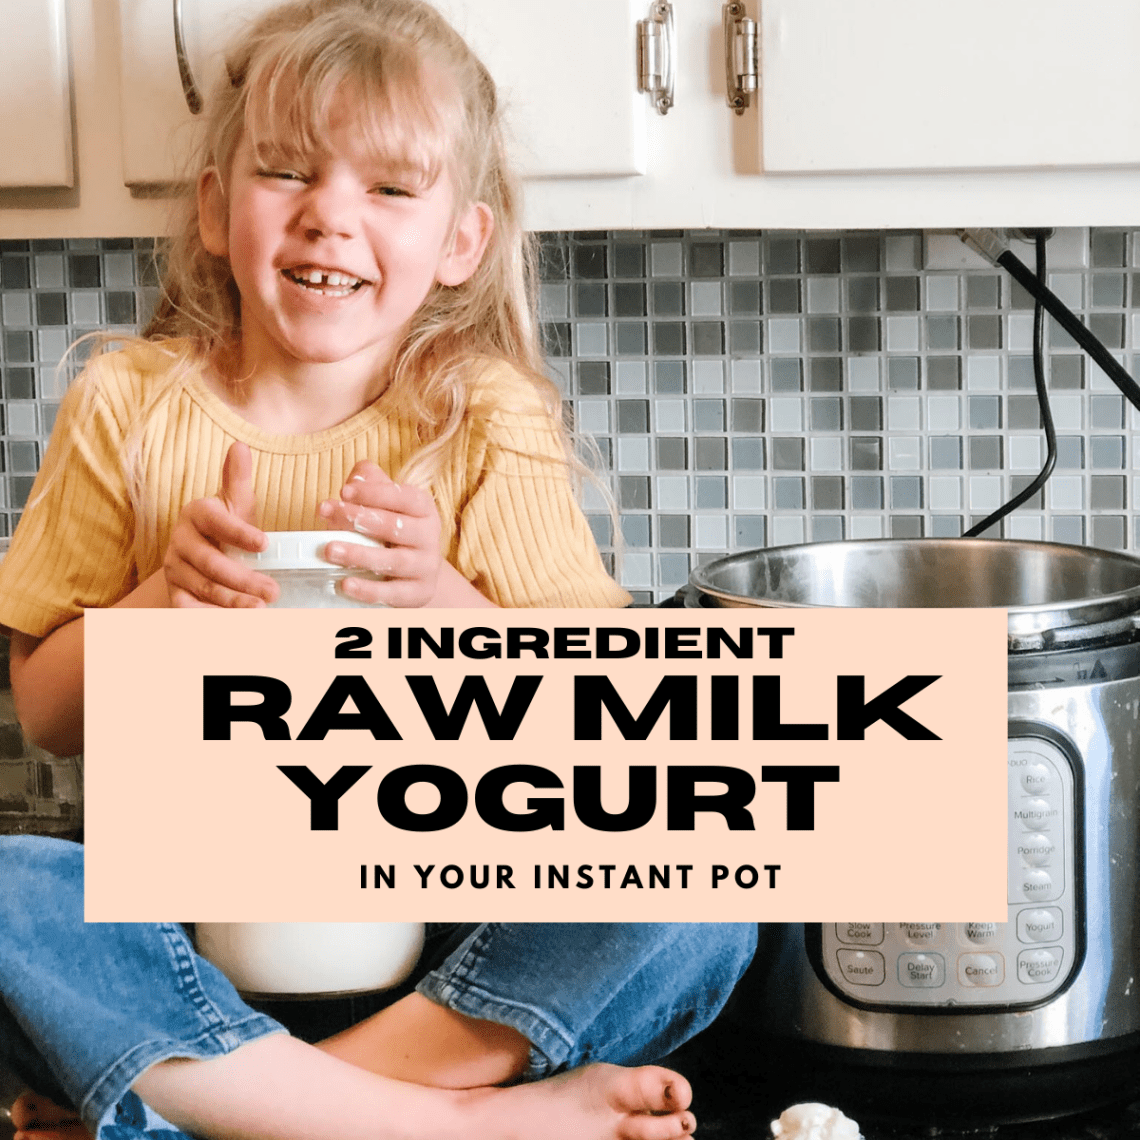 am image with text over it saying 2 ingredient raw milk yogurt in your instant pot